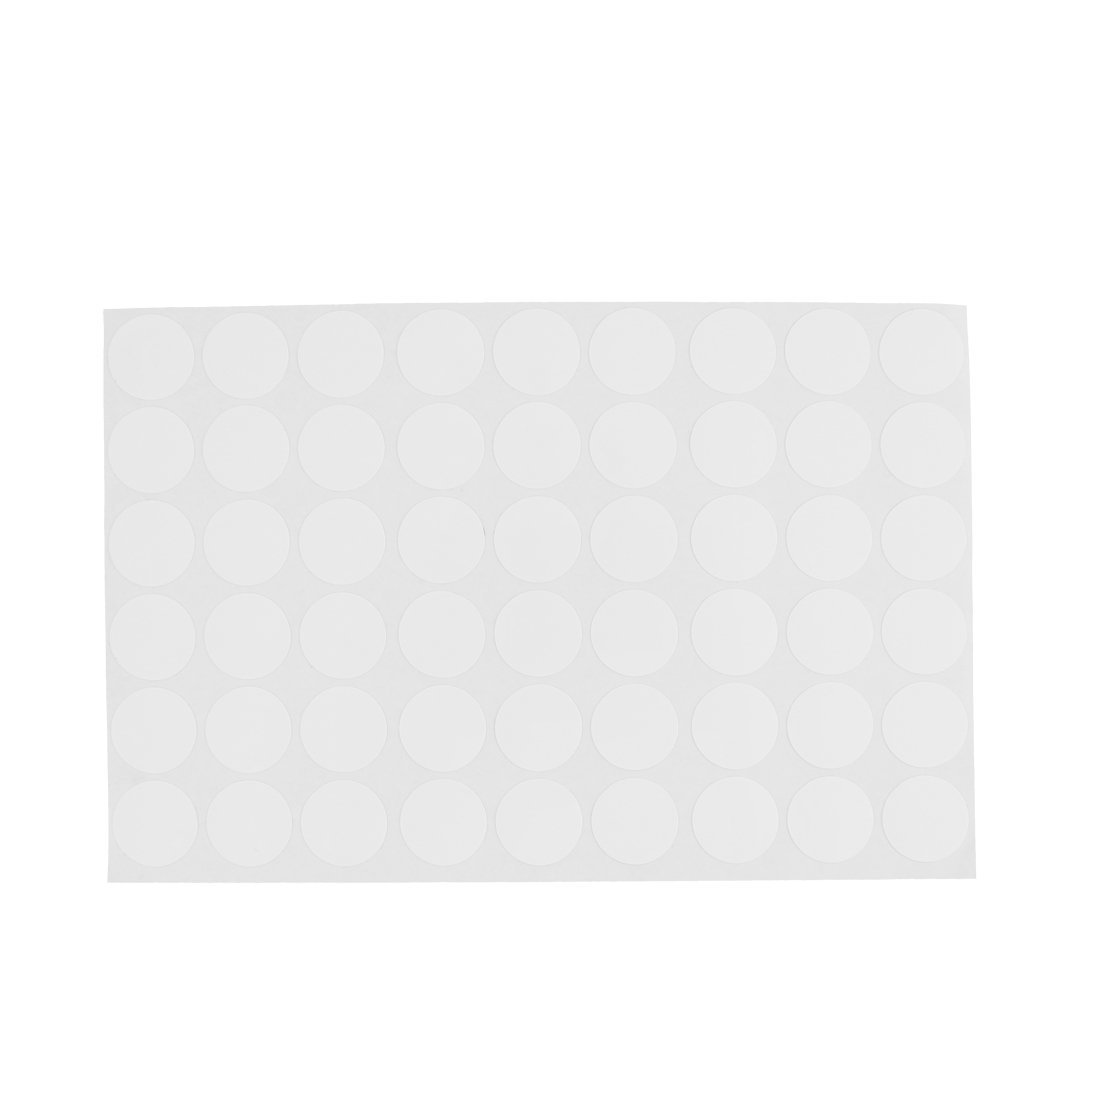 Top quality Wardrobe Cupboard Self-adhesive Screw Covers Caps Stickers 54 in 1 WhiteTop quality Wardrobe Cupboard Self-adhesive Screw Covers Caps Stickers 54 in 1 White